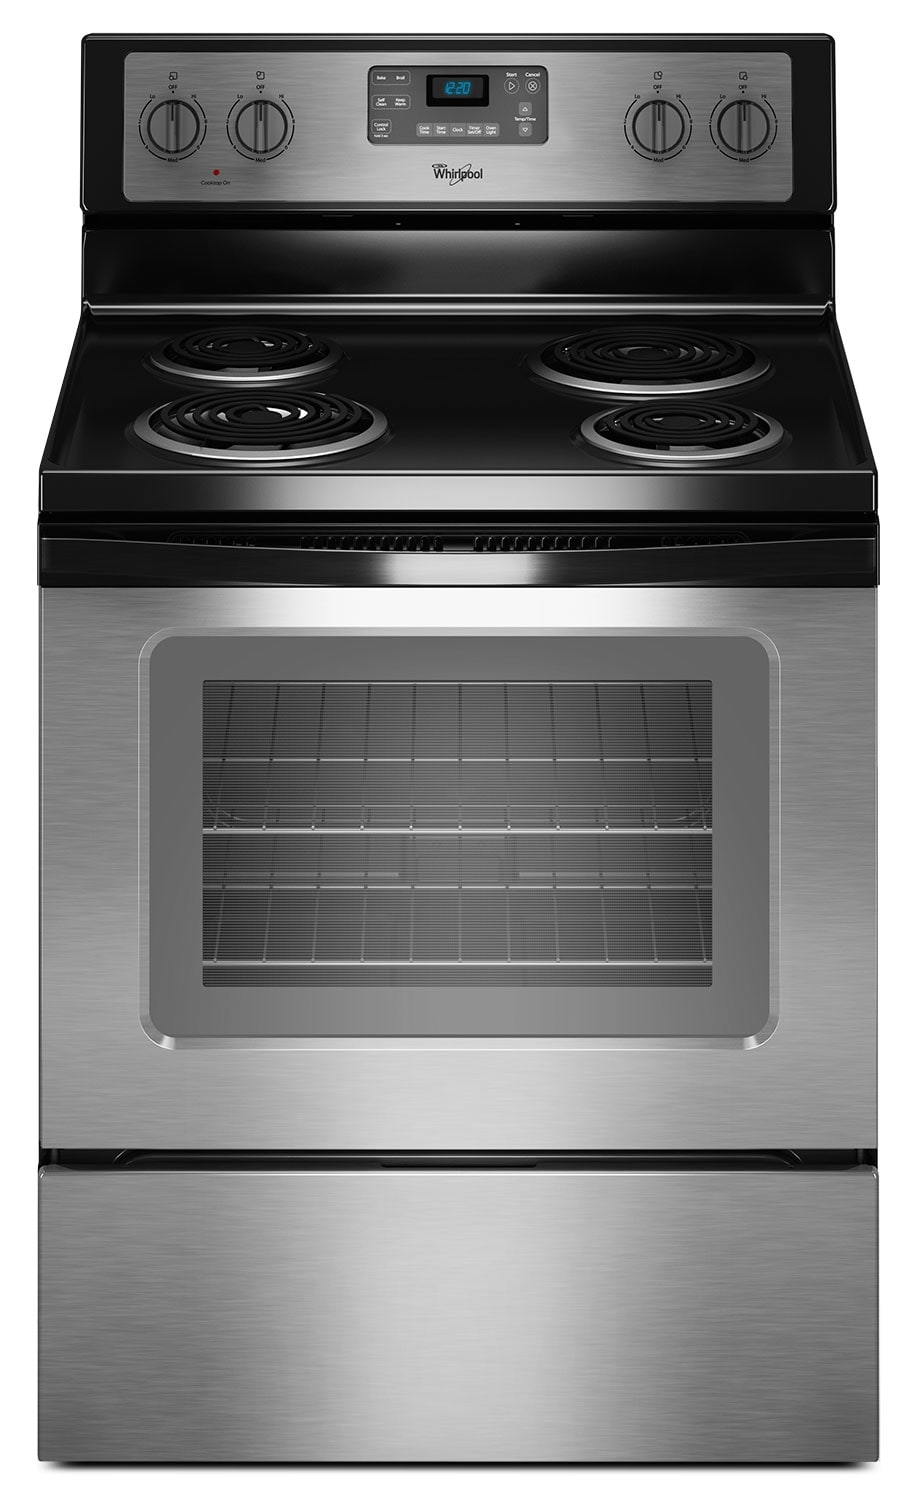 Whirlpool Stainless Steel Electric Range 4 8 Cu Ft